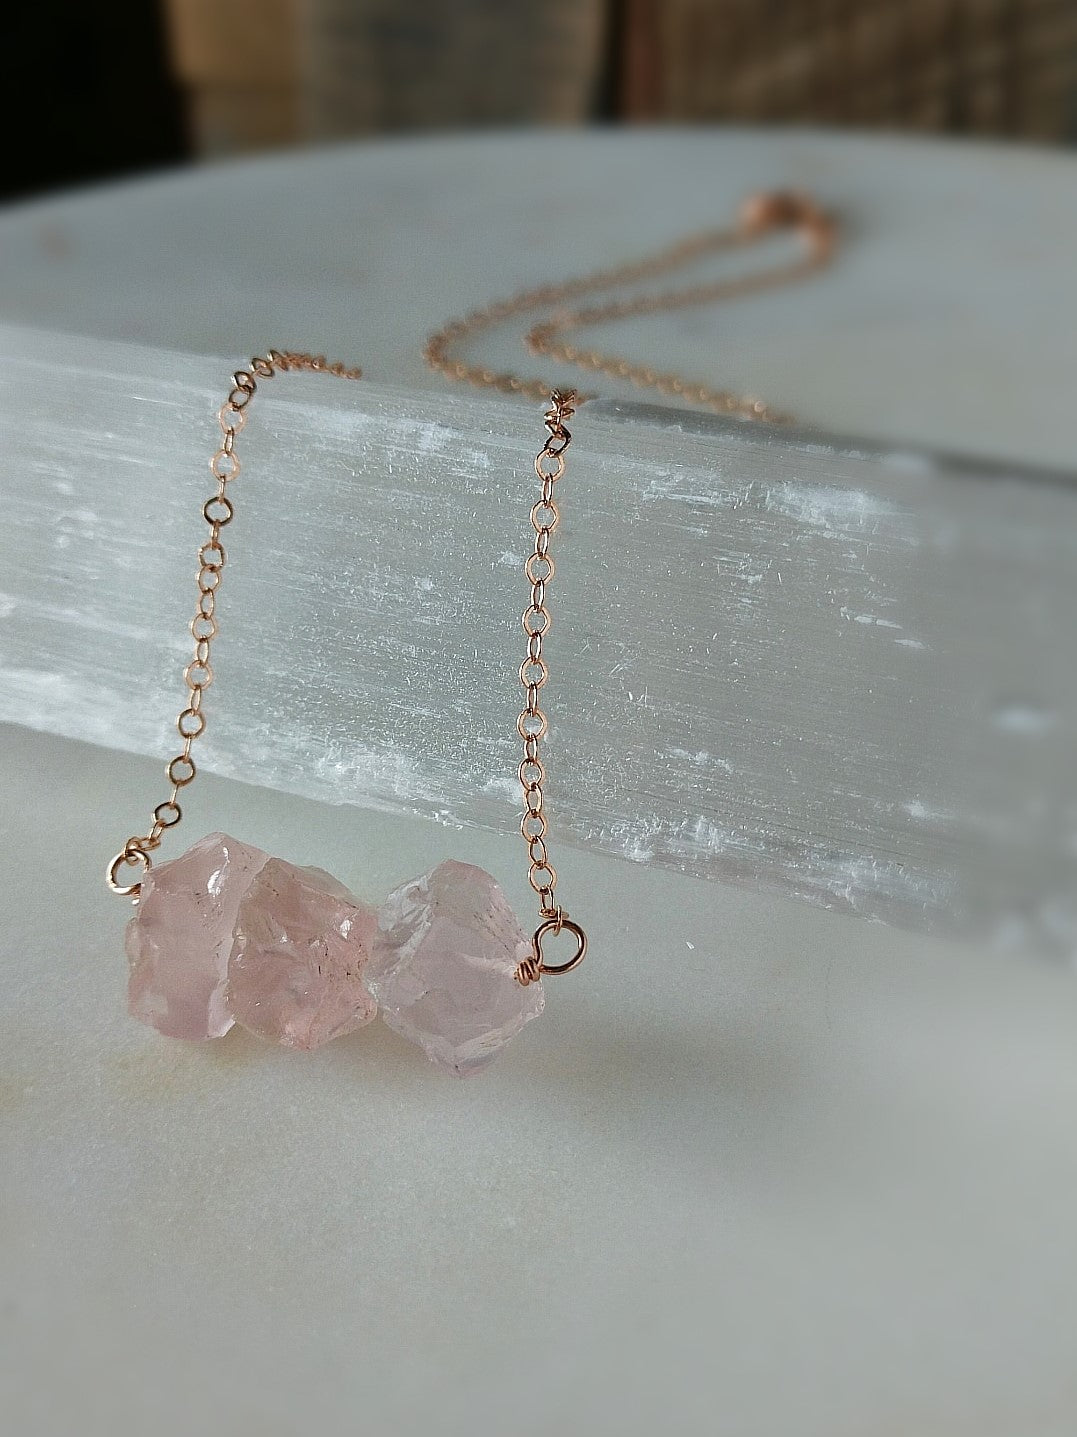 Love Nugget features raw rose quartz nuggets on rose gold by Rare Soul accessories.